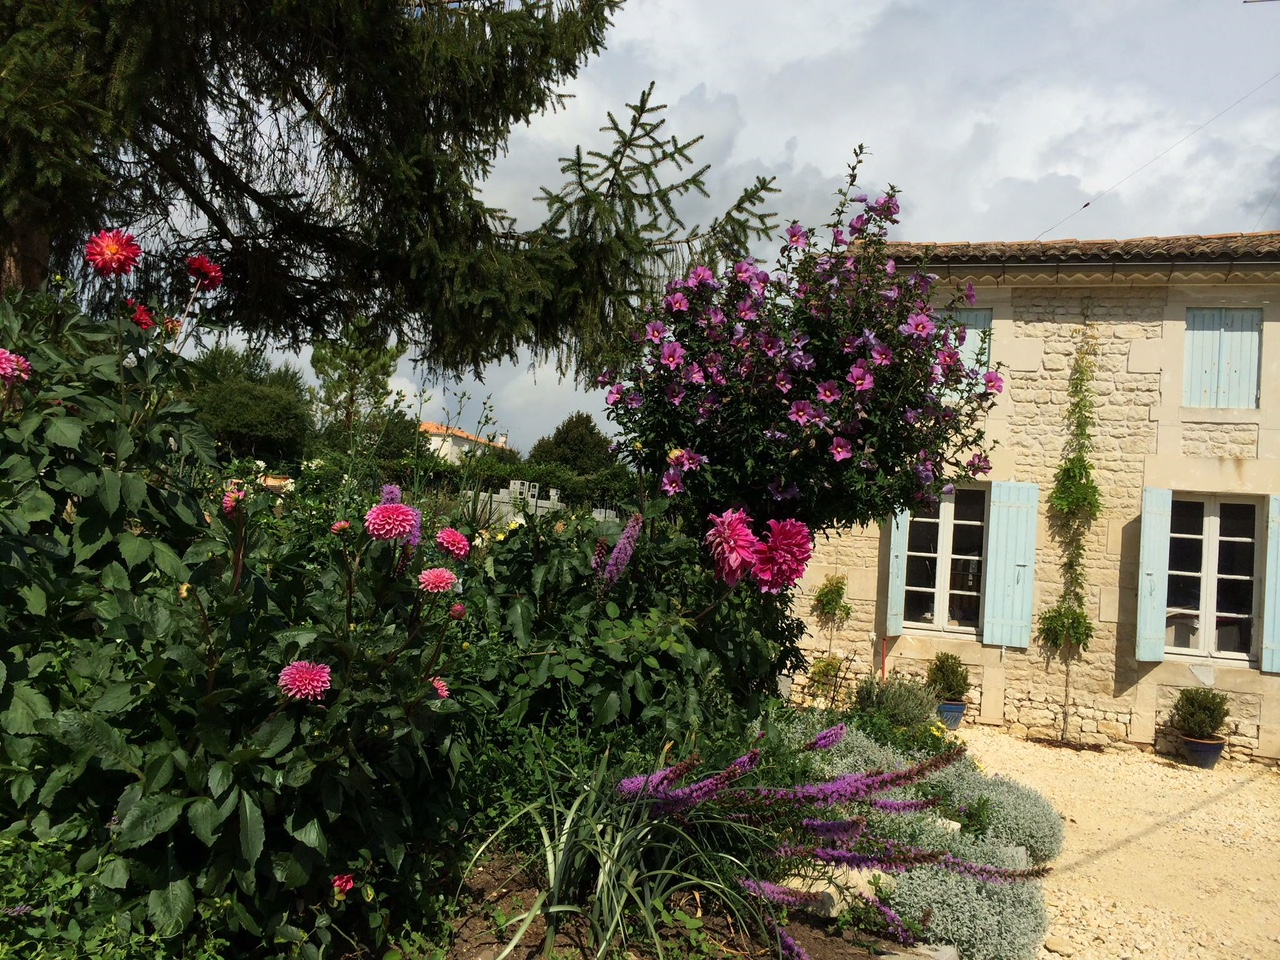 Renovation Maison La Rochelle the french country house – renovations – painting holidays